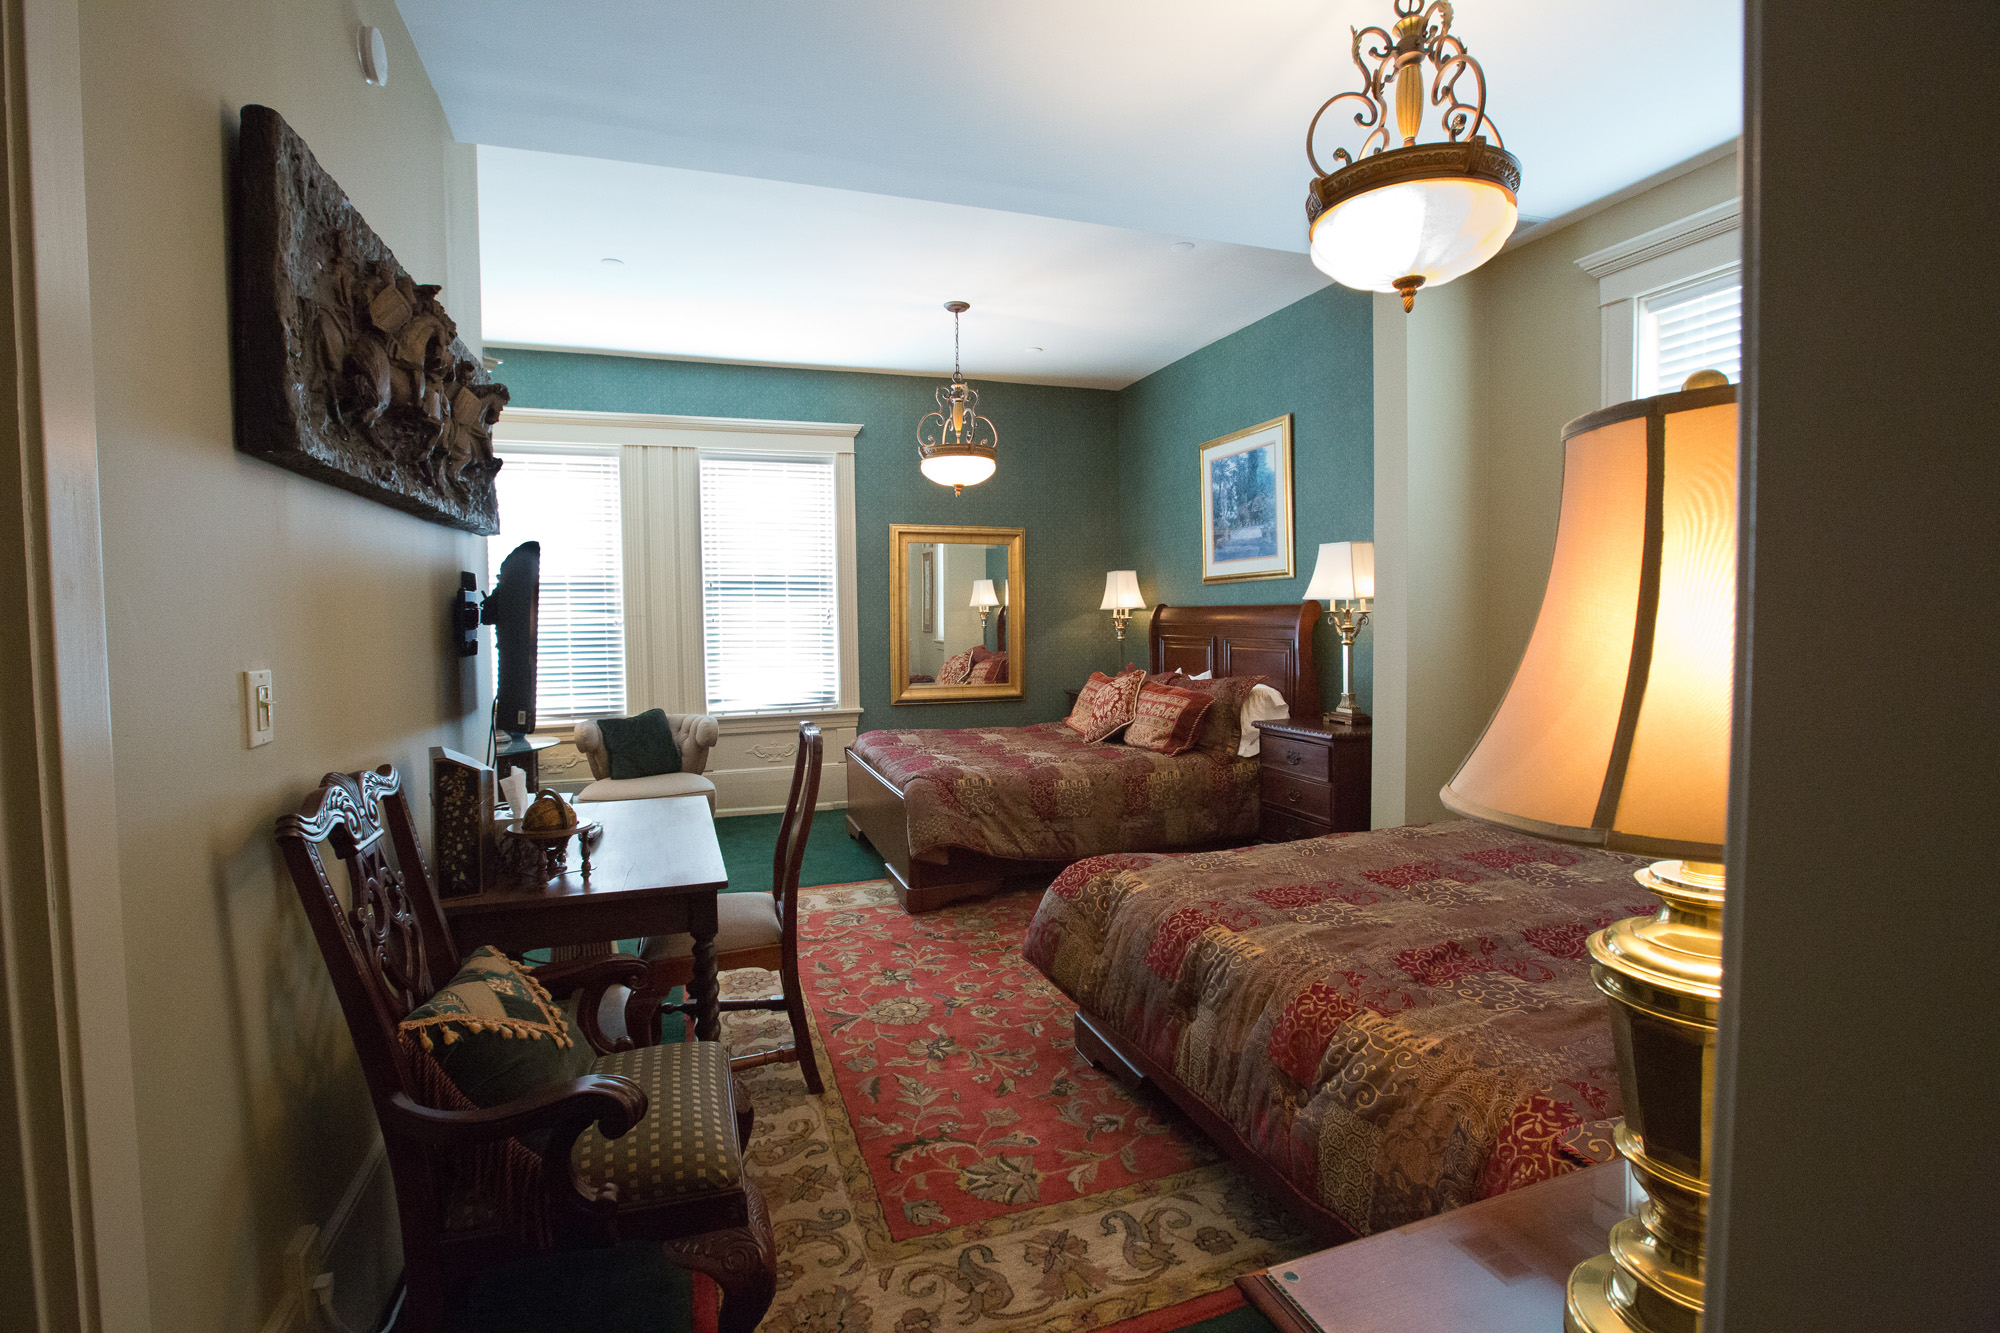 Room 6 - Double Queen Bedroom - $195 per night